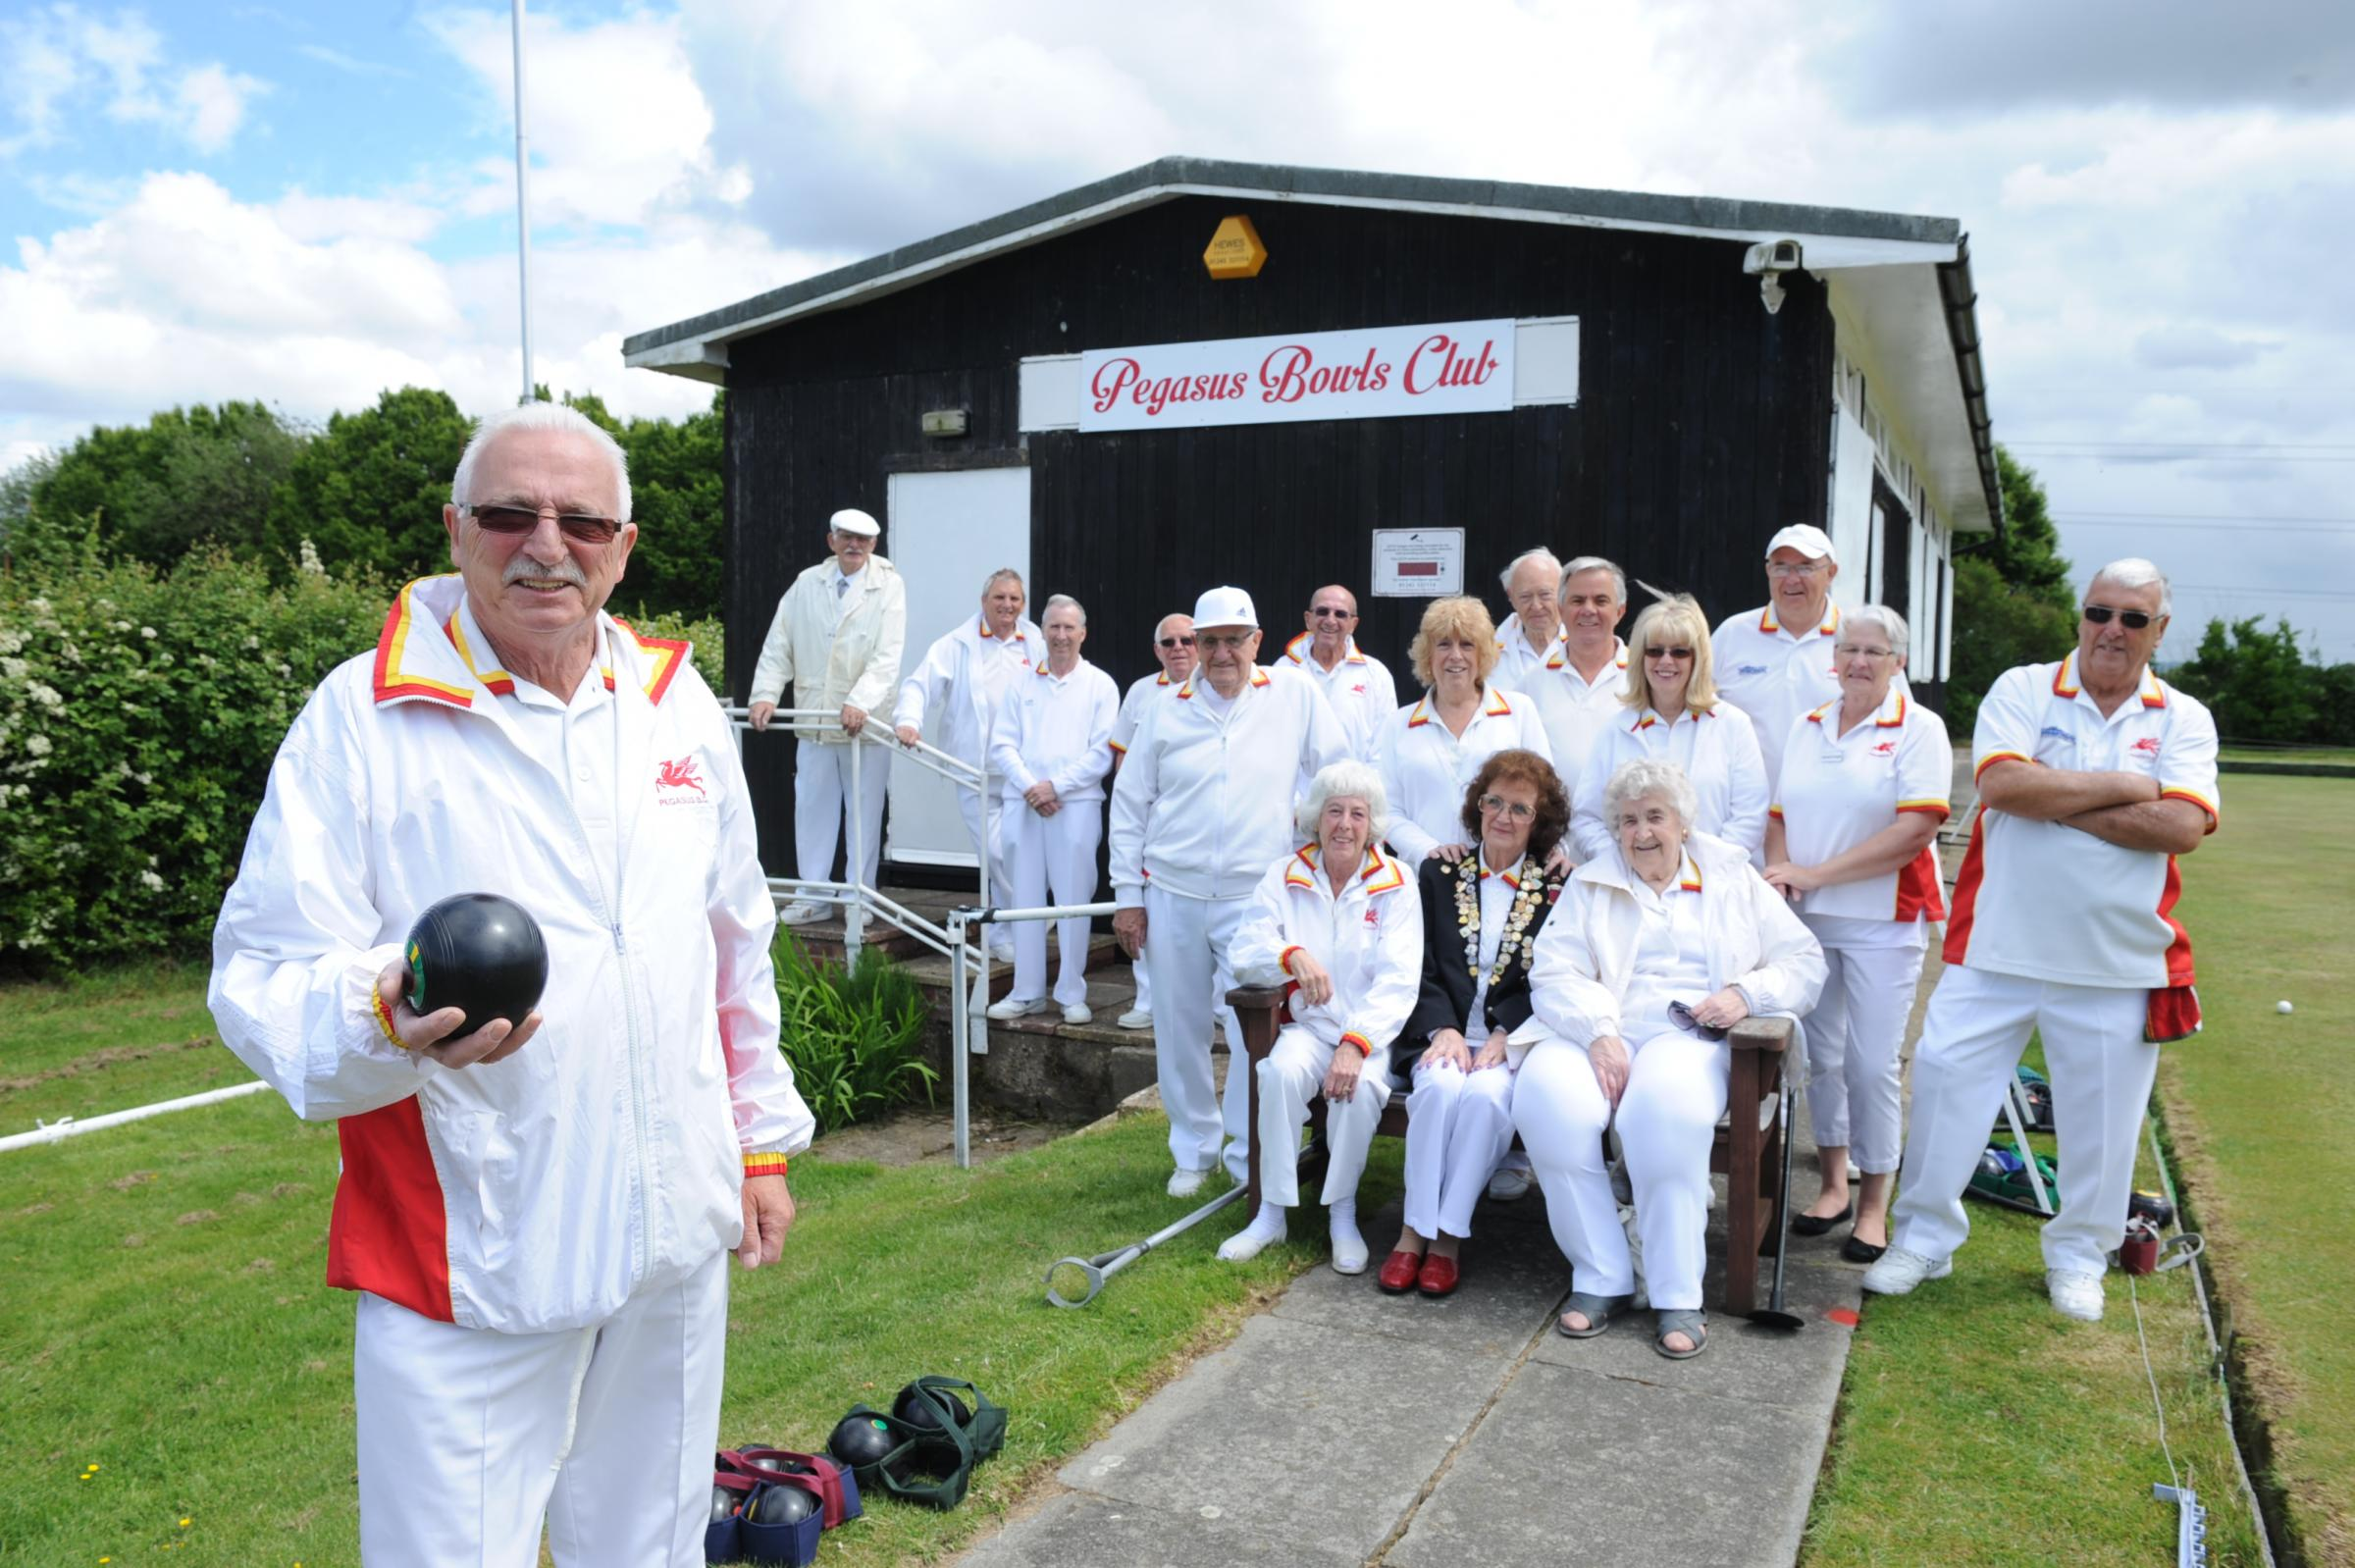 Club captain George Martin, front left, with the Pegasus Bowls Club